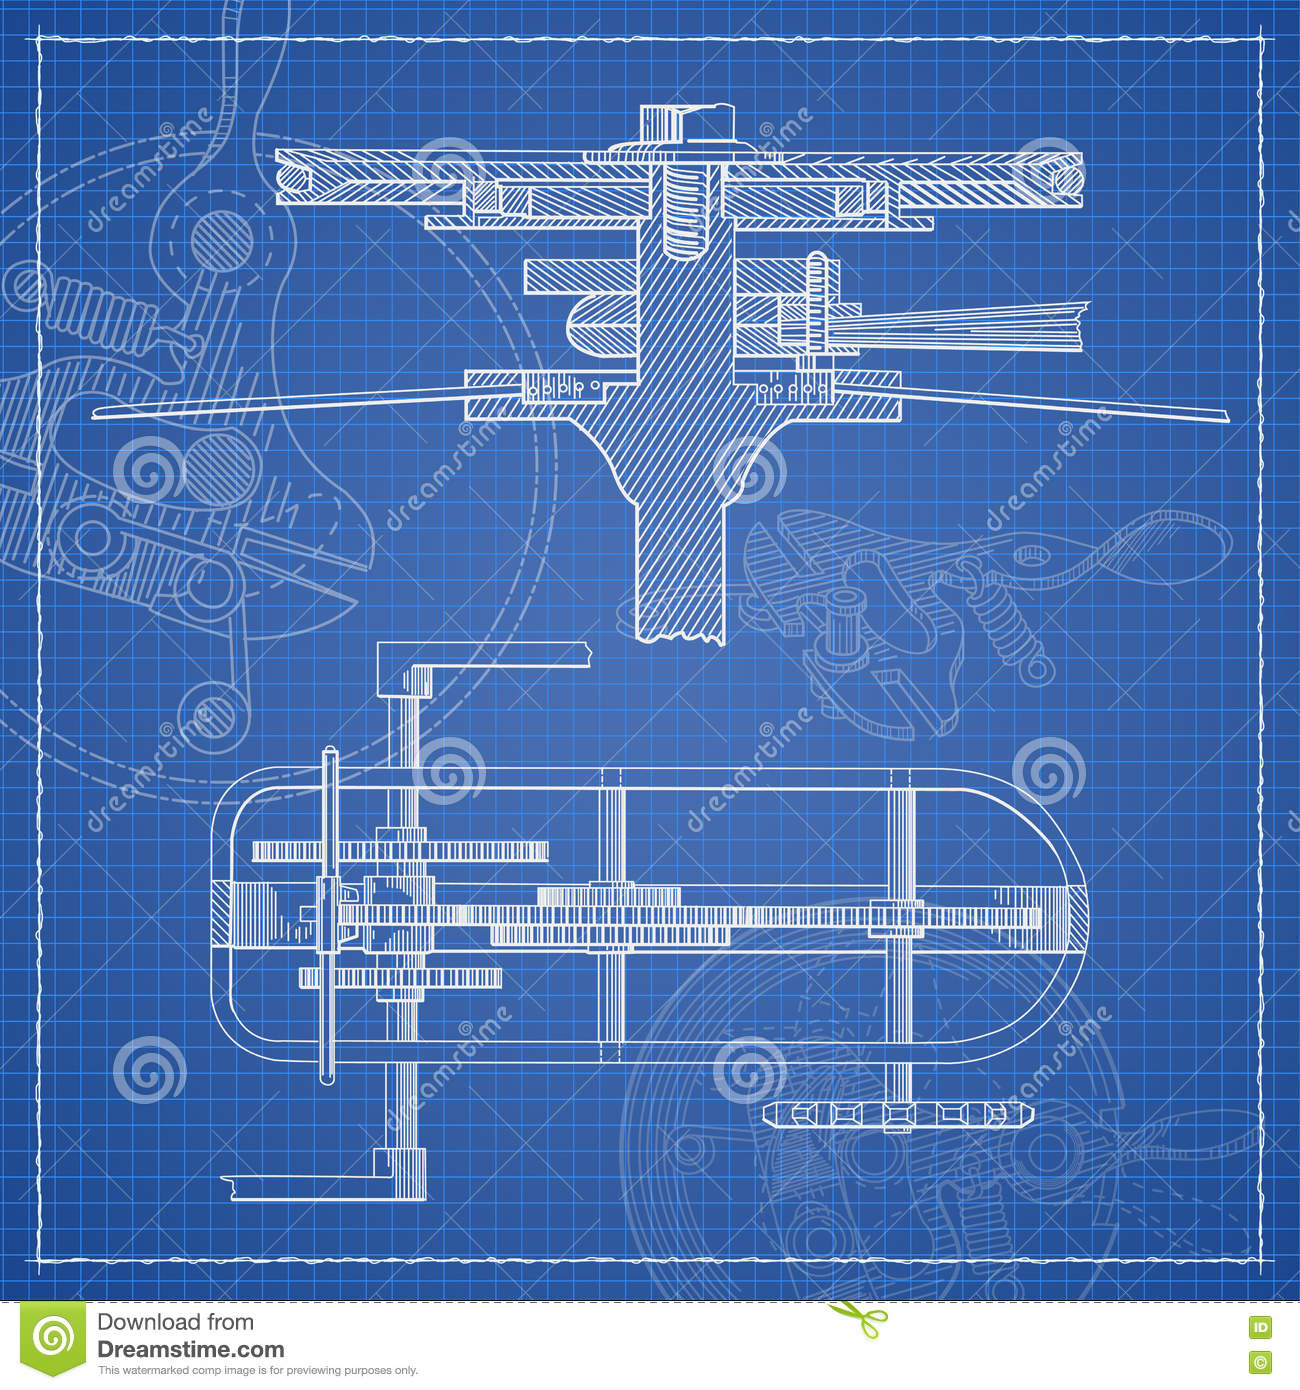 Mechanism blueprint stylized draft stock vector for How to make a blueprint